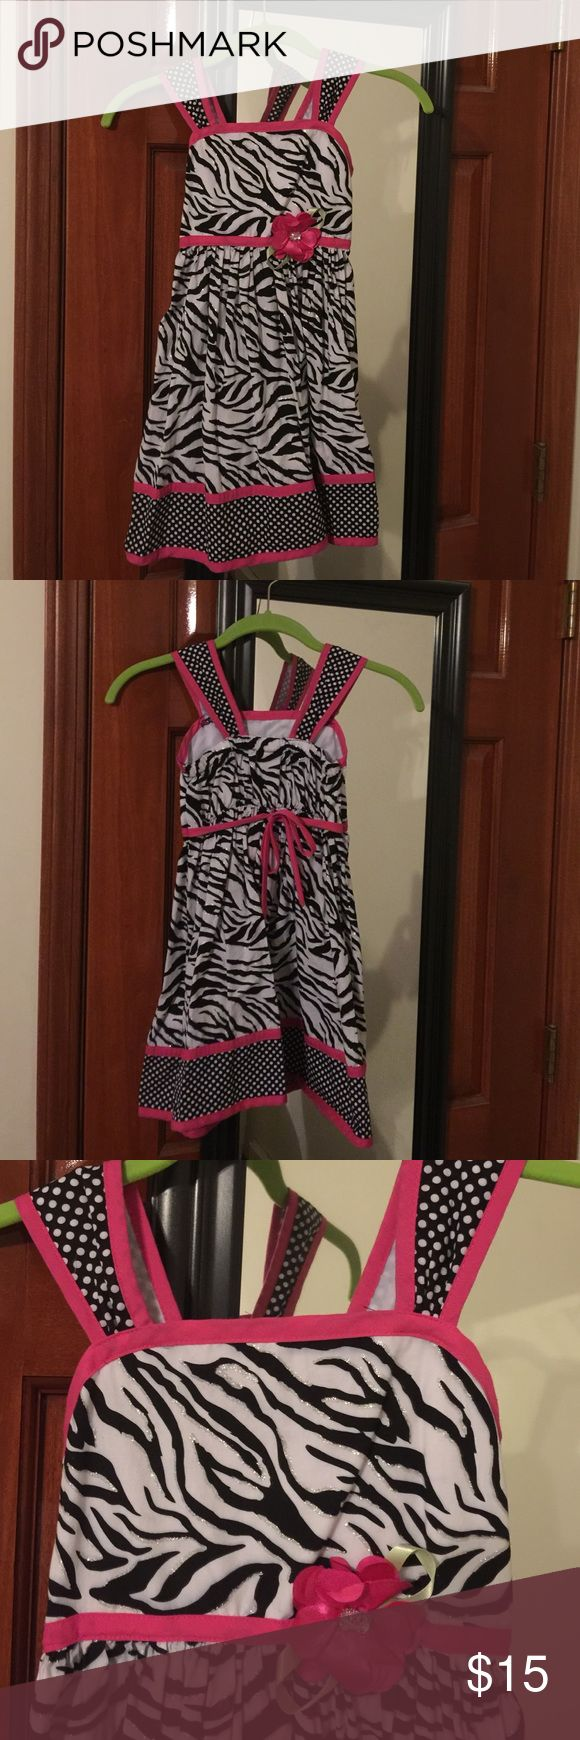 Very cute zebra print dress This is a zebra print dress worn just a couple times. It has silver sparkles outlining the zebra print. Pink sweater was purchased separately. Goes nicely with the dress for those cool sprin/summer days. Sweater is Sonoma brand size 5. Smoke free home! Youngland Dresses Casual